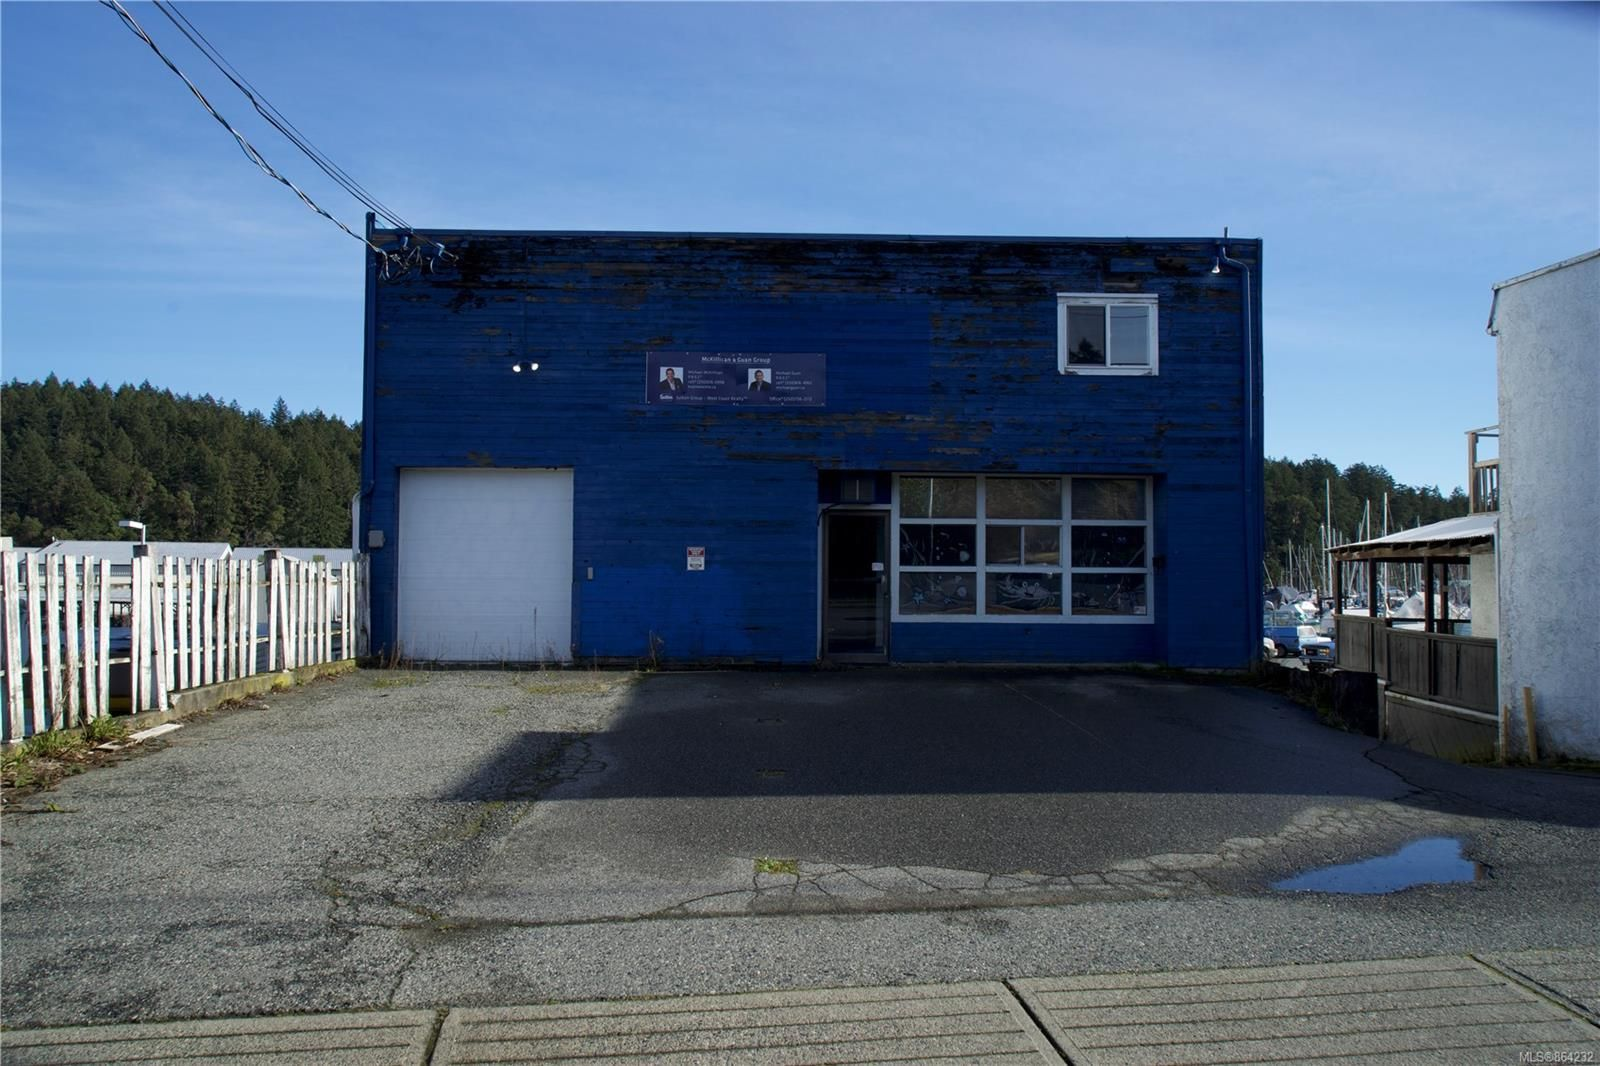 Photo 4: Photos: 1340-1370 Stewart Ave in : Na Brechin Hill Mixed Use for sale (Nanaimo)  : MLS®# 864232